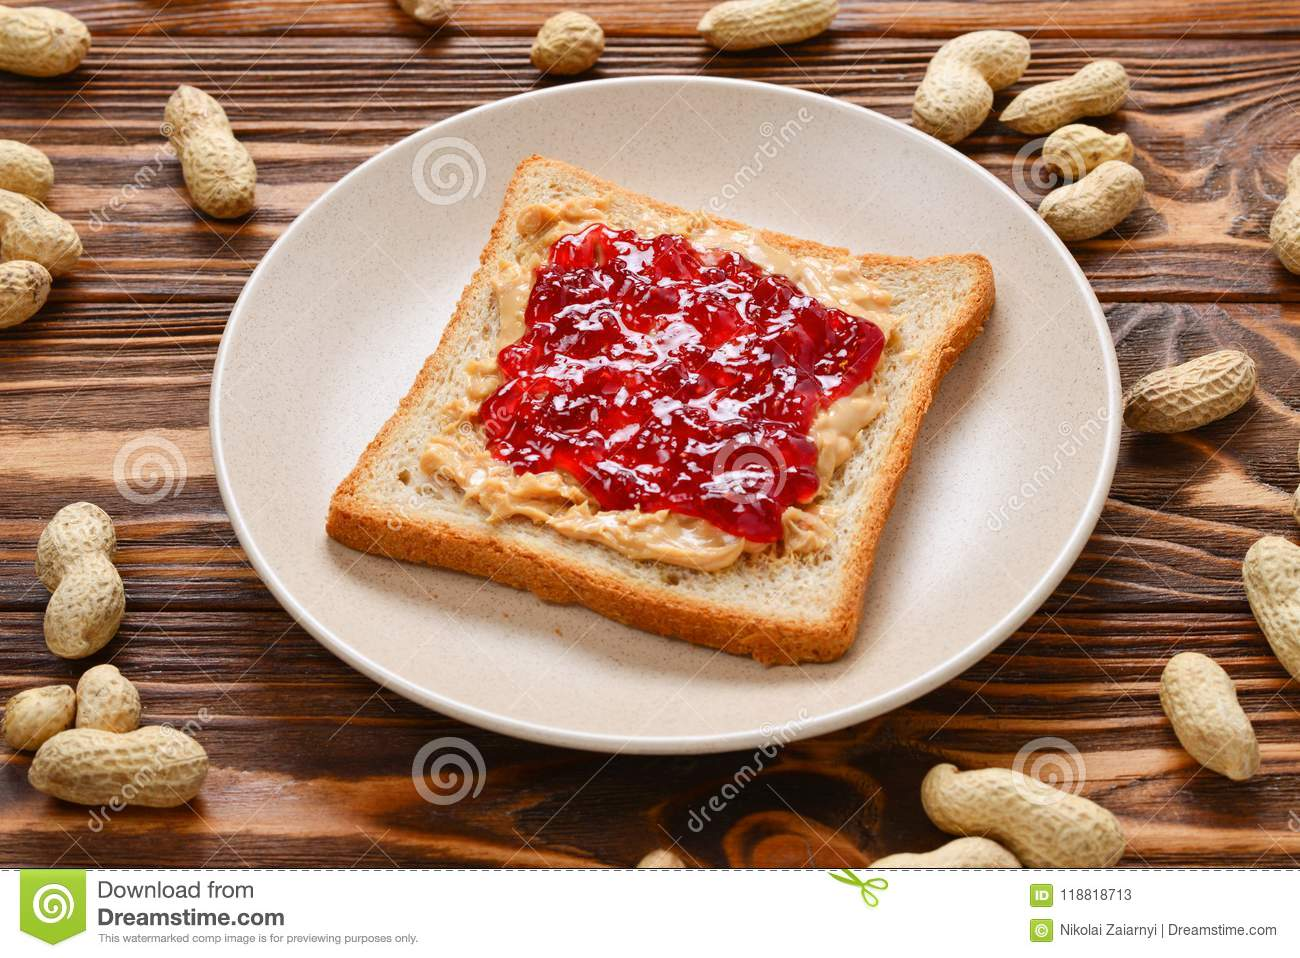 Peanut butter and jelly sandwich on wooden background.